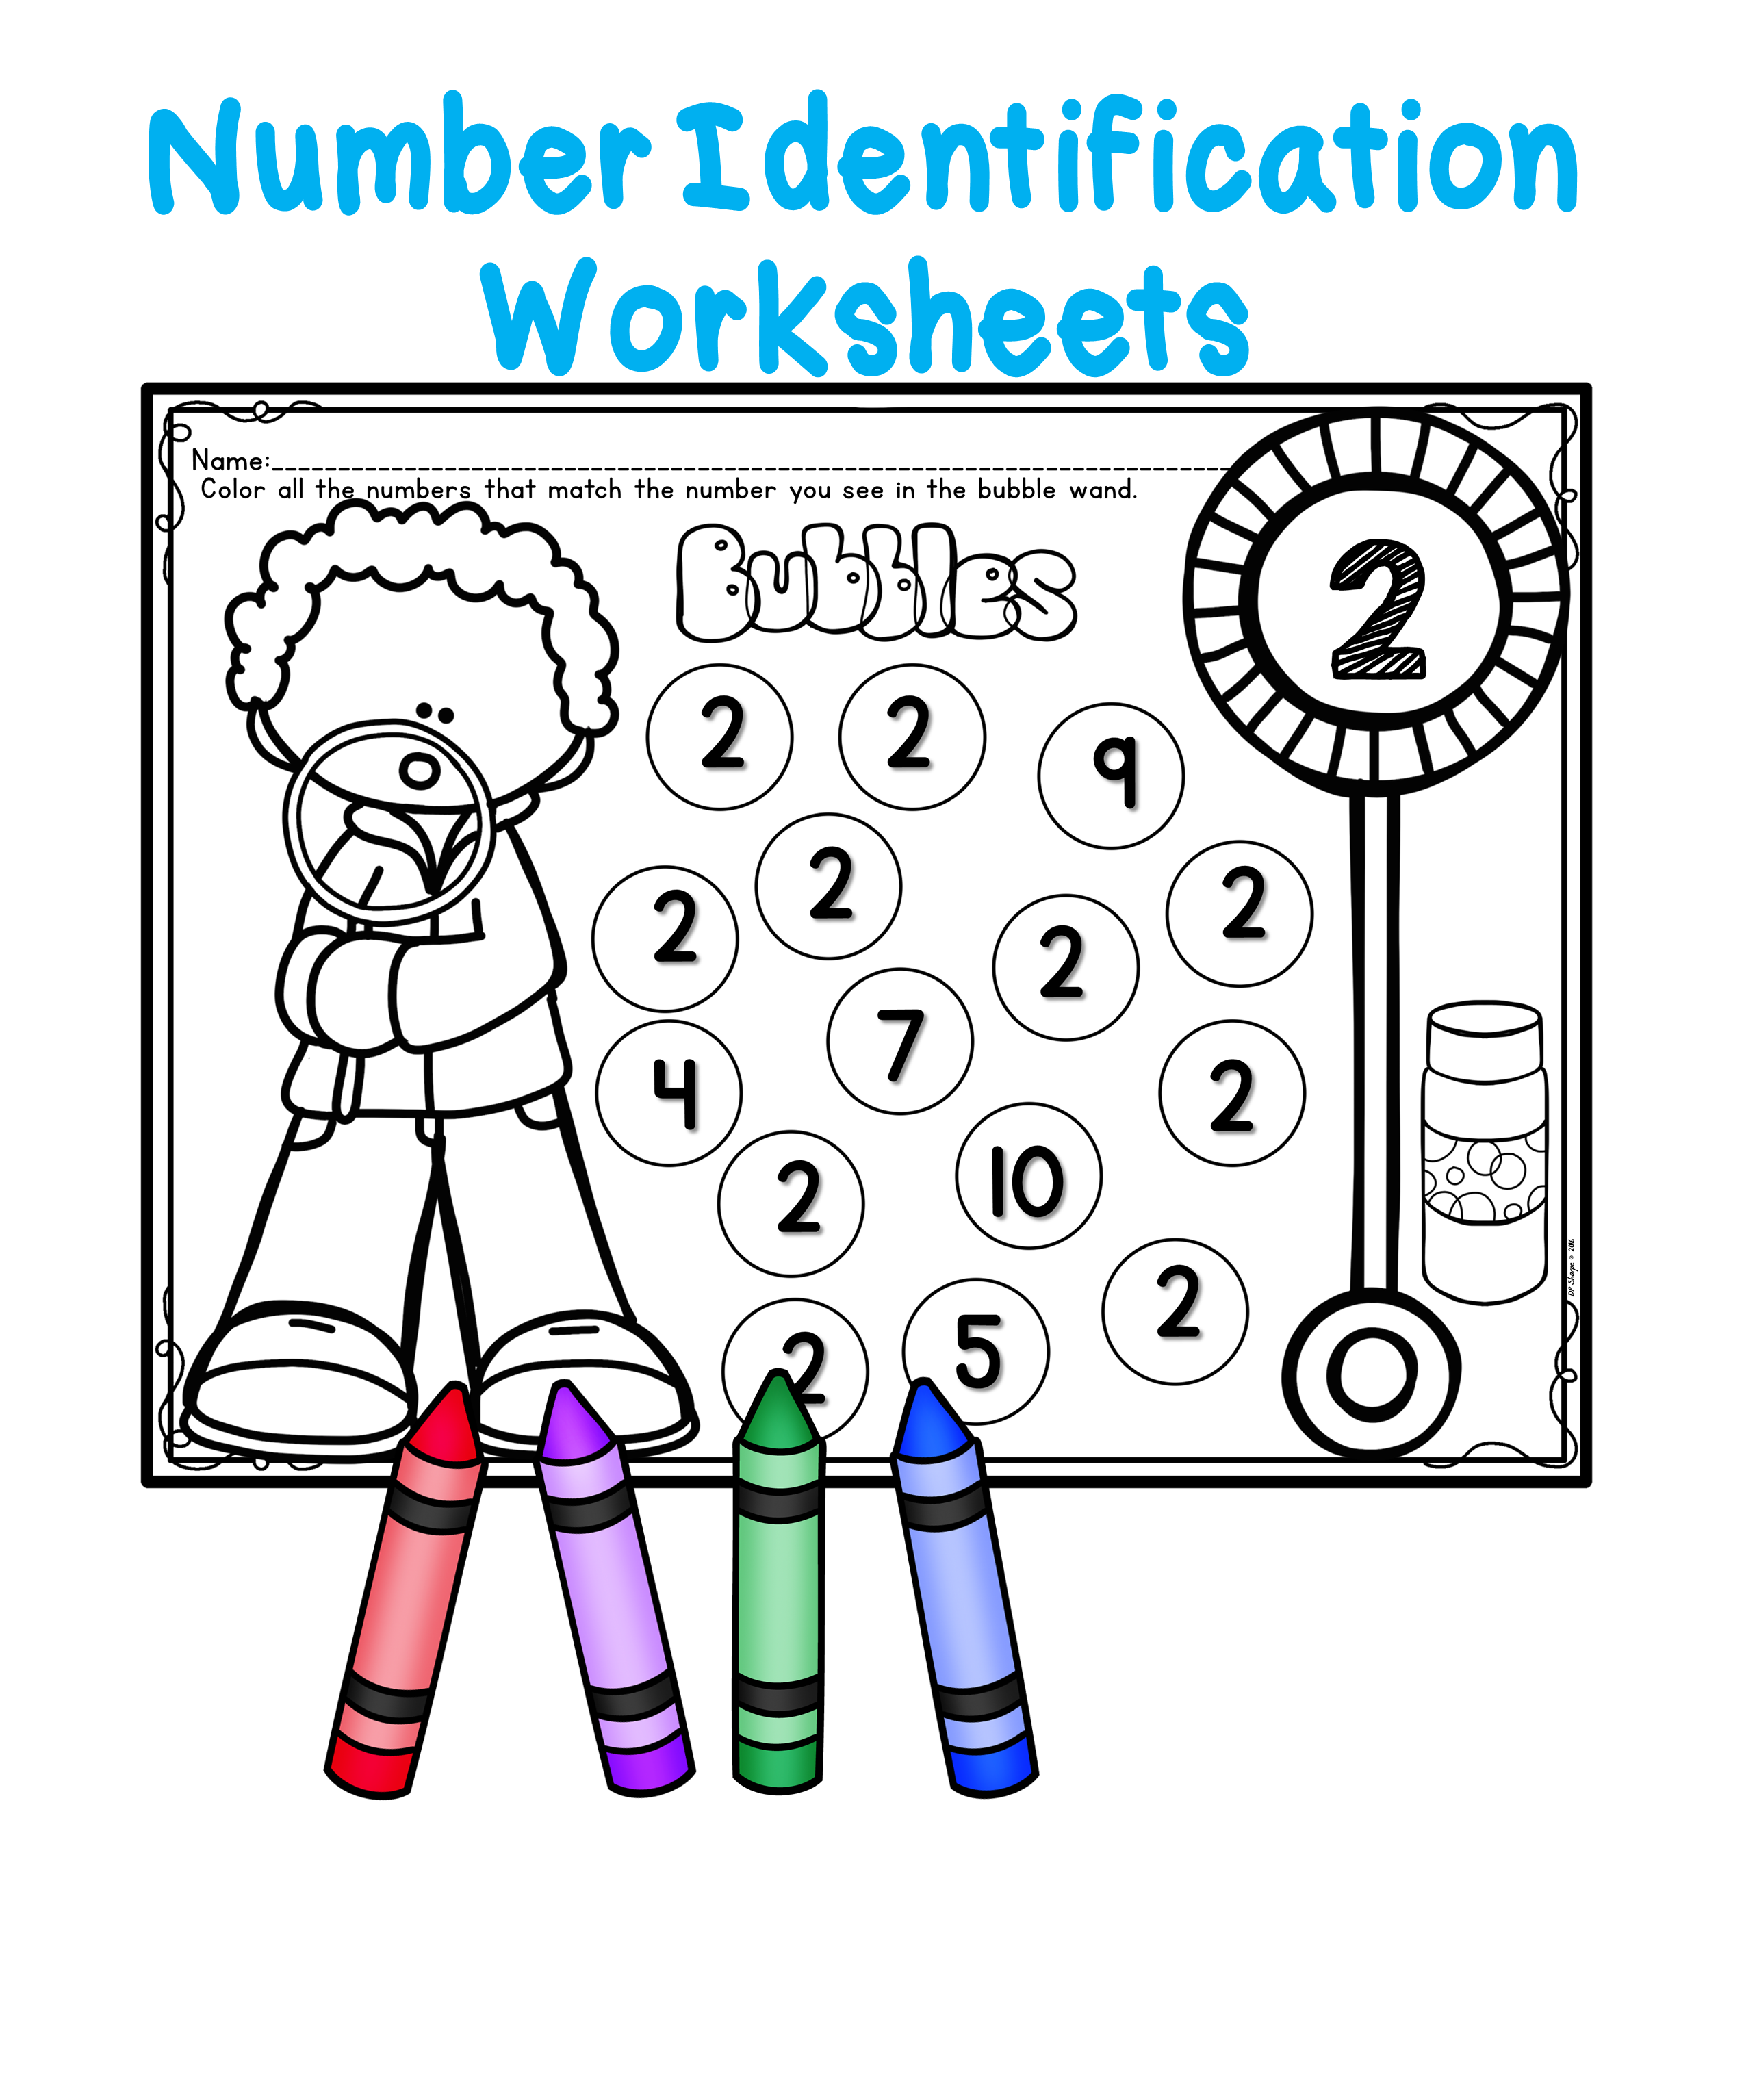 Number Identification Bubble Fun Worksheets | Primary Collaborative ...